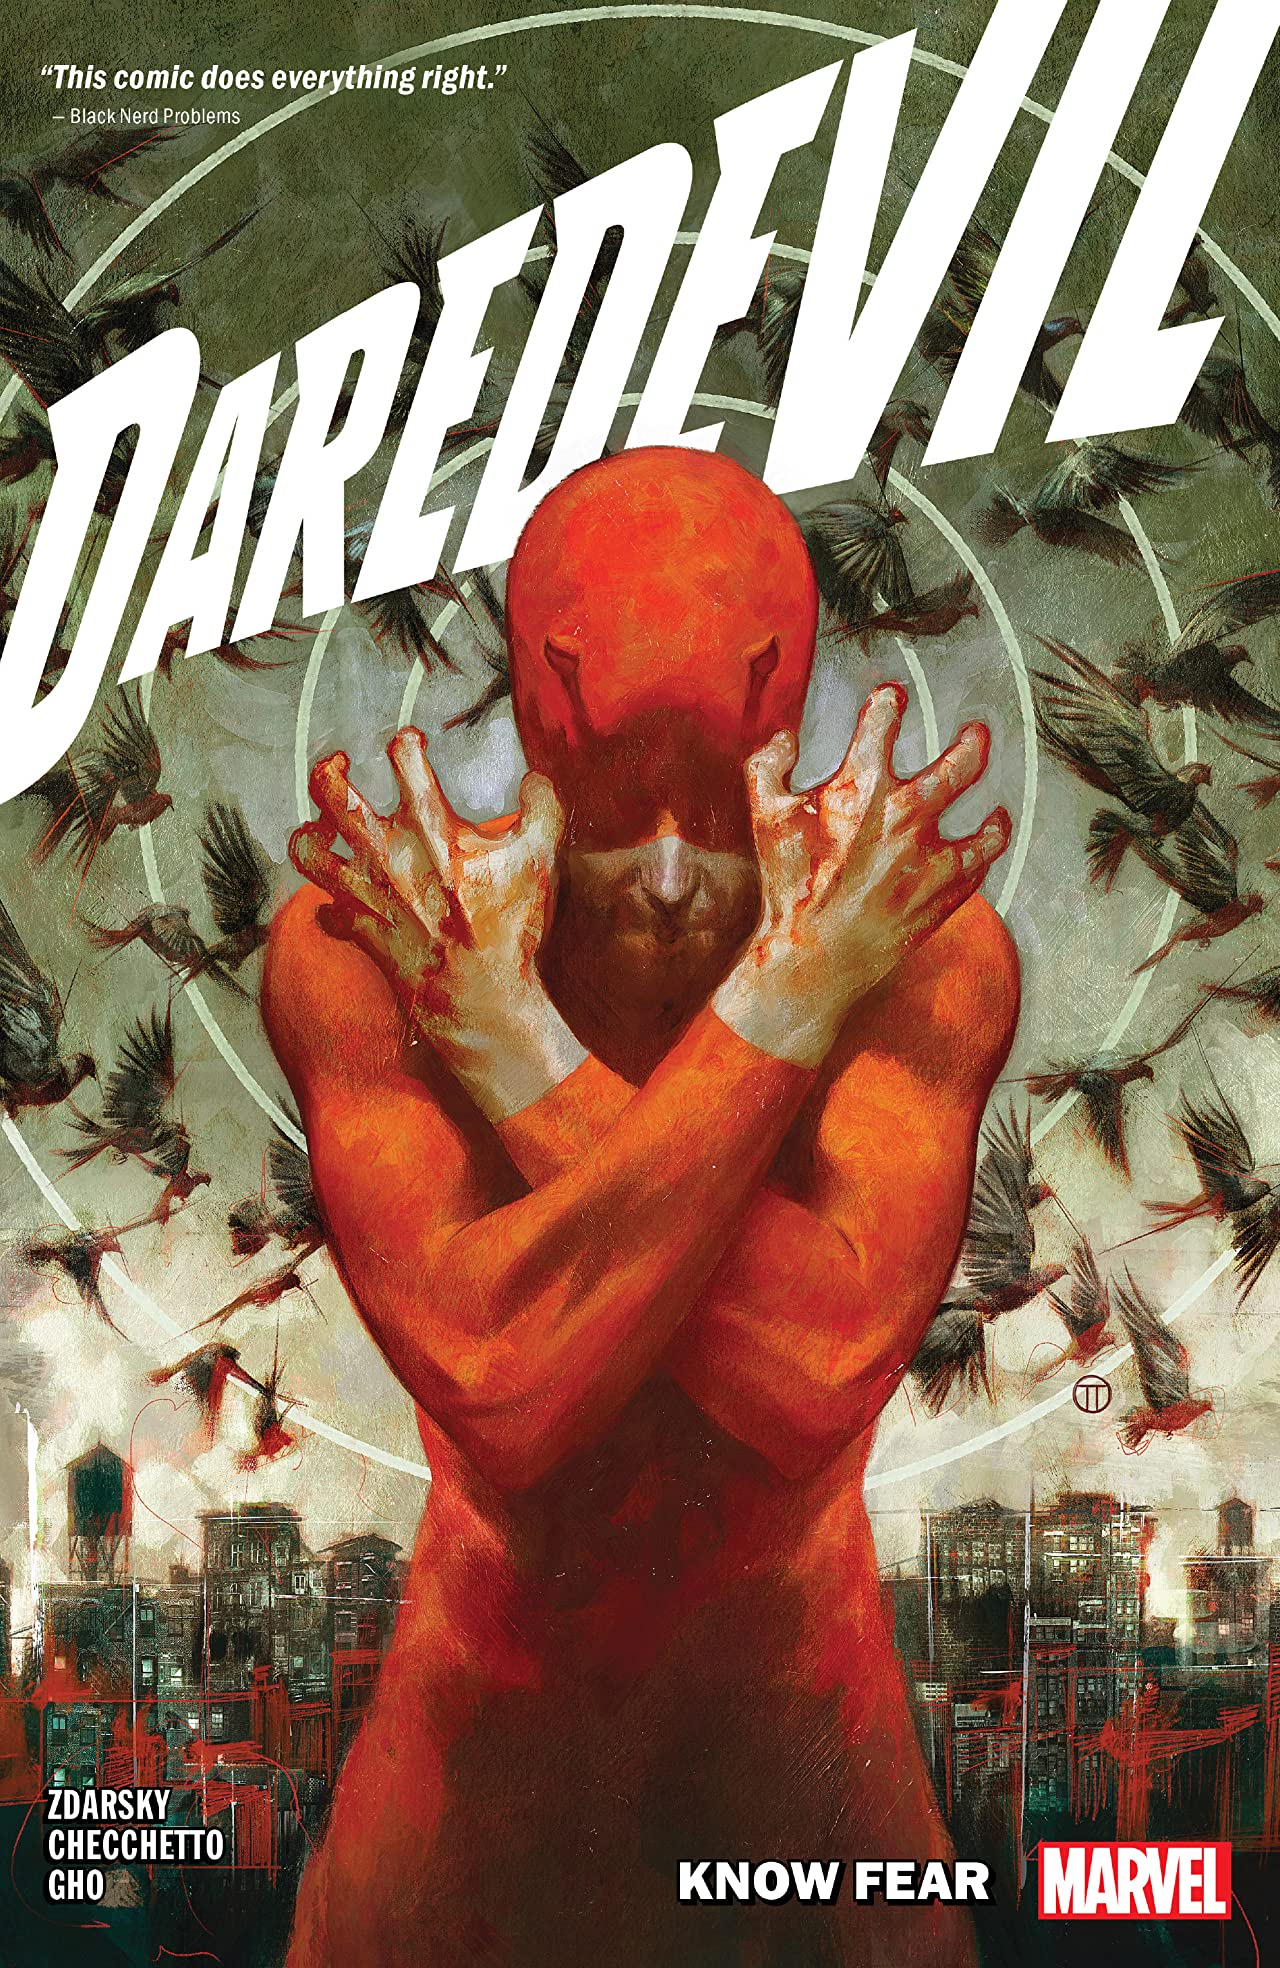 Daredevil by Chip Zdarsky Vol. 1: To Know Fear